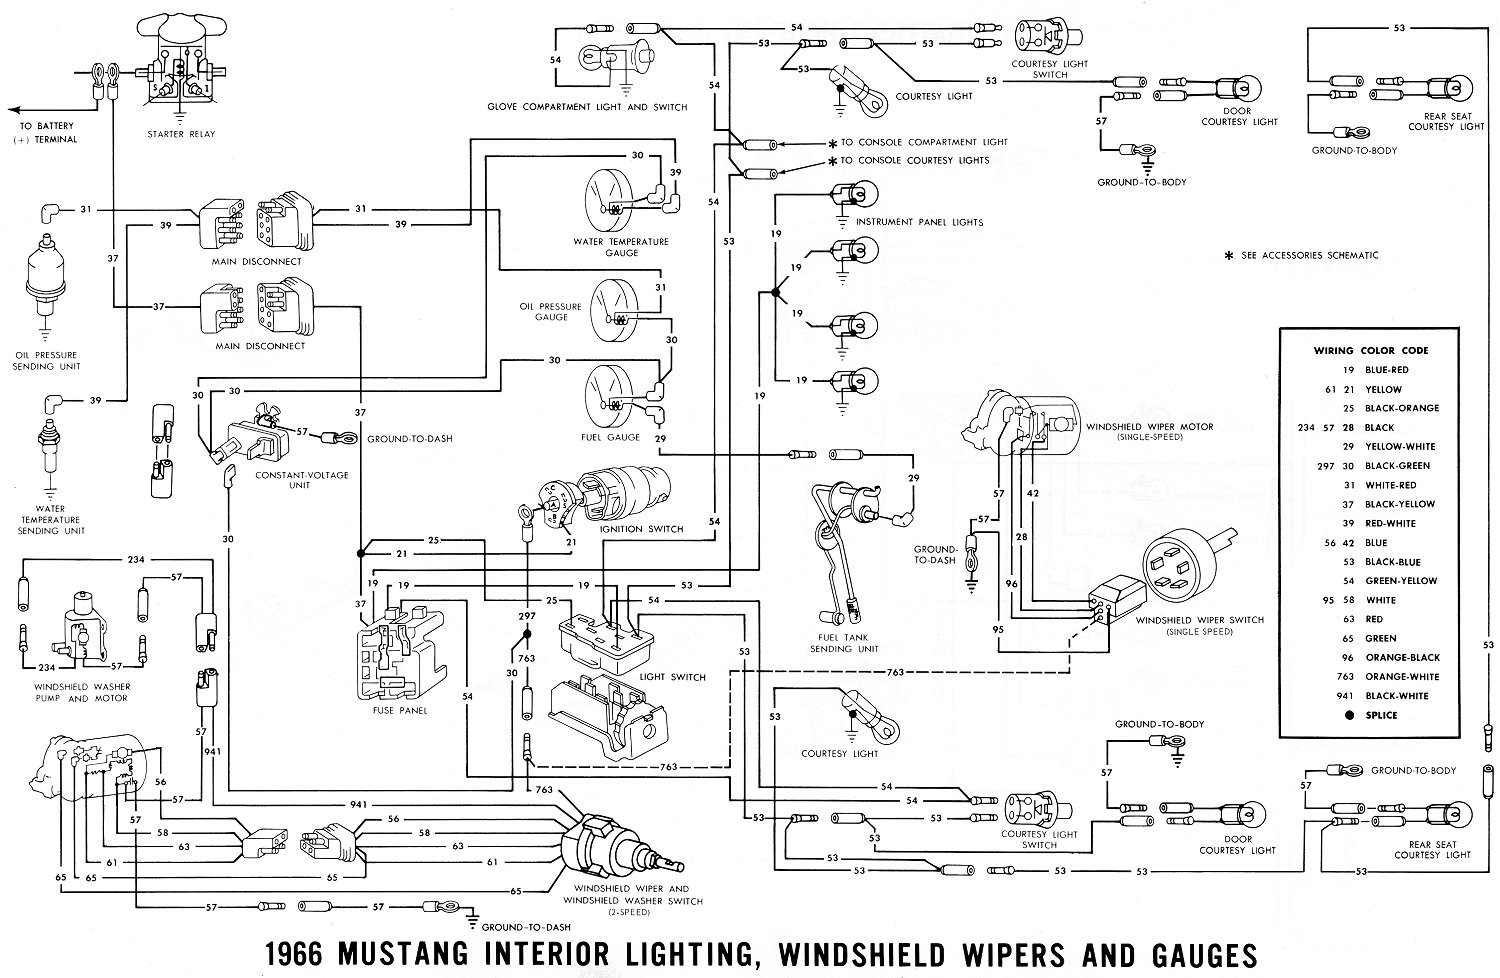 1966 Mustang Ignition Wiring Not Lossing Diagram F 100 Coil Engine Todays Rh 9 11 12 1813weddingbarn Com Switch